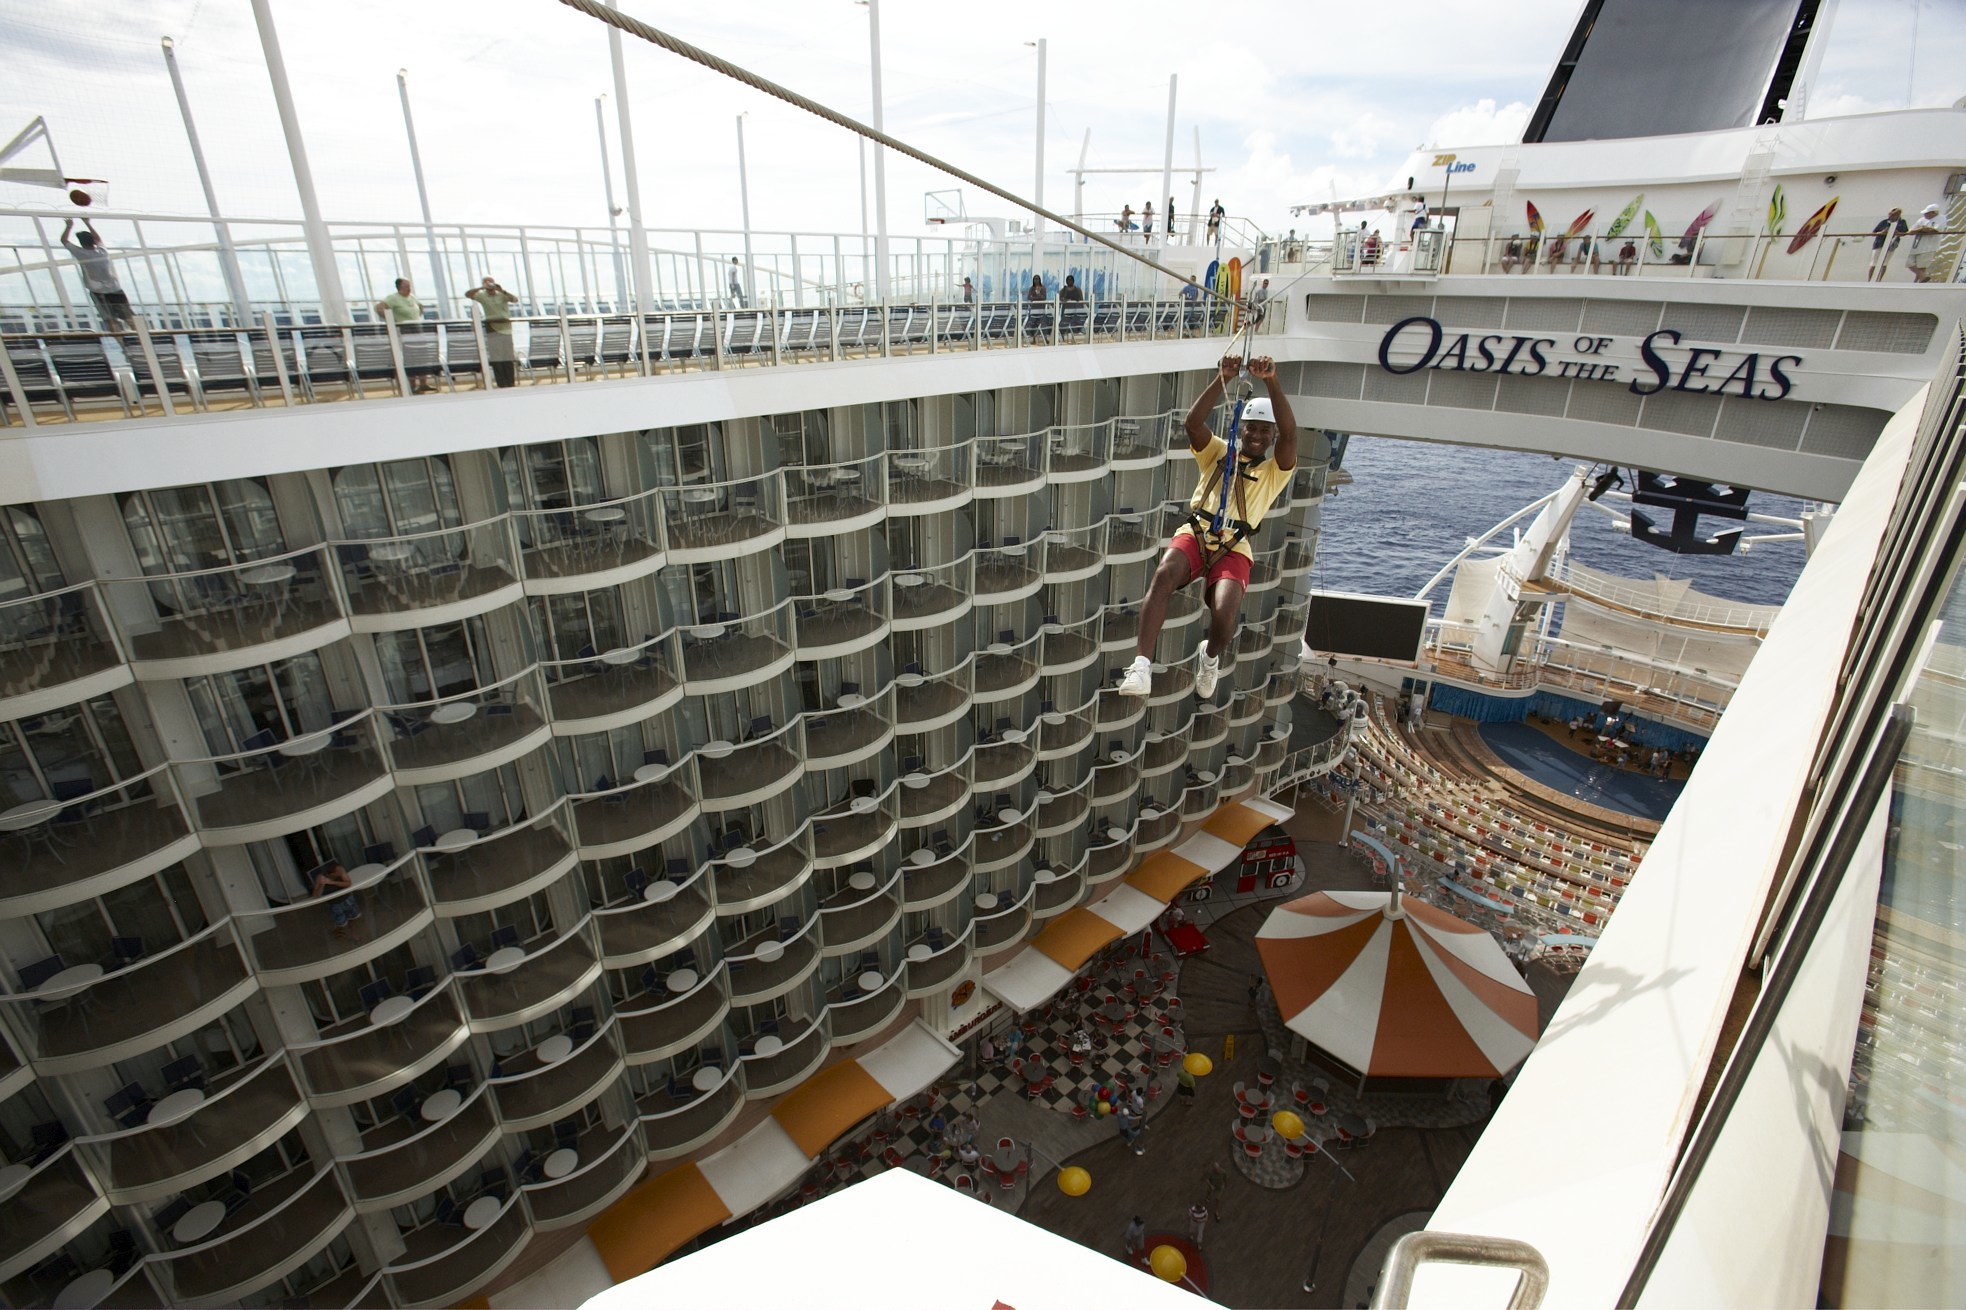 Royal Caribbean International Oasis of the Seas Exterior ZIPLINE AA 090.jpg